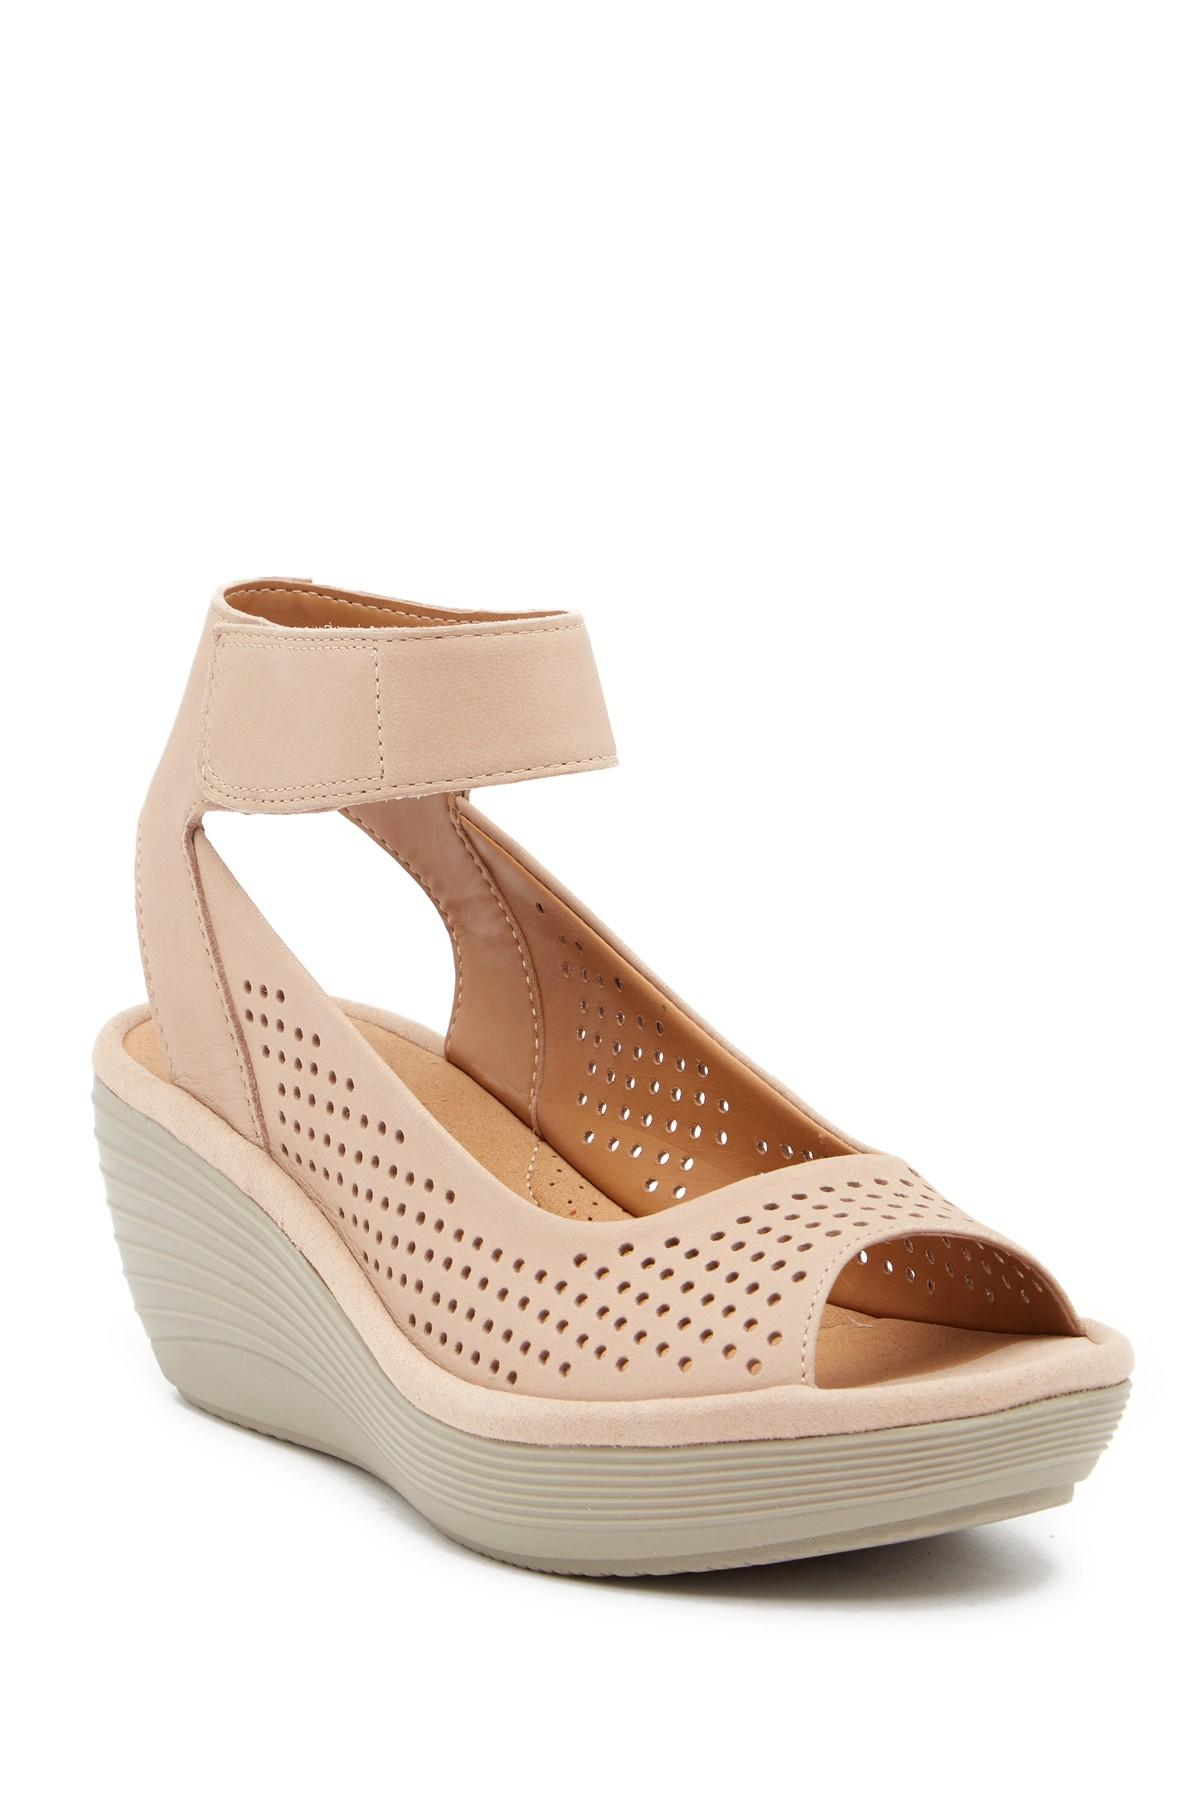 7ce21b0c68ef Lyst clarks reedly salene wedge sandals save jpg 1200x1800 Wide width wedge  sandals for women